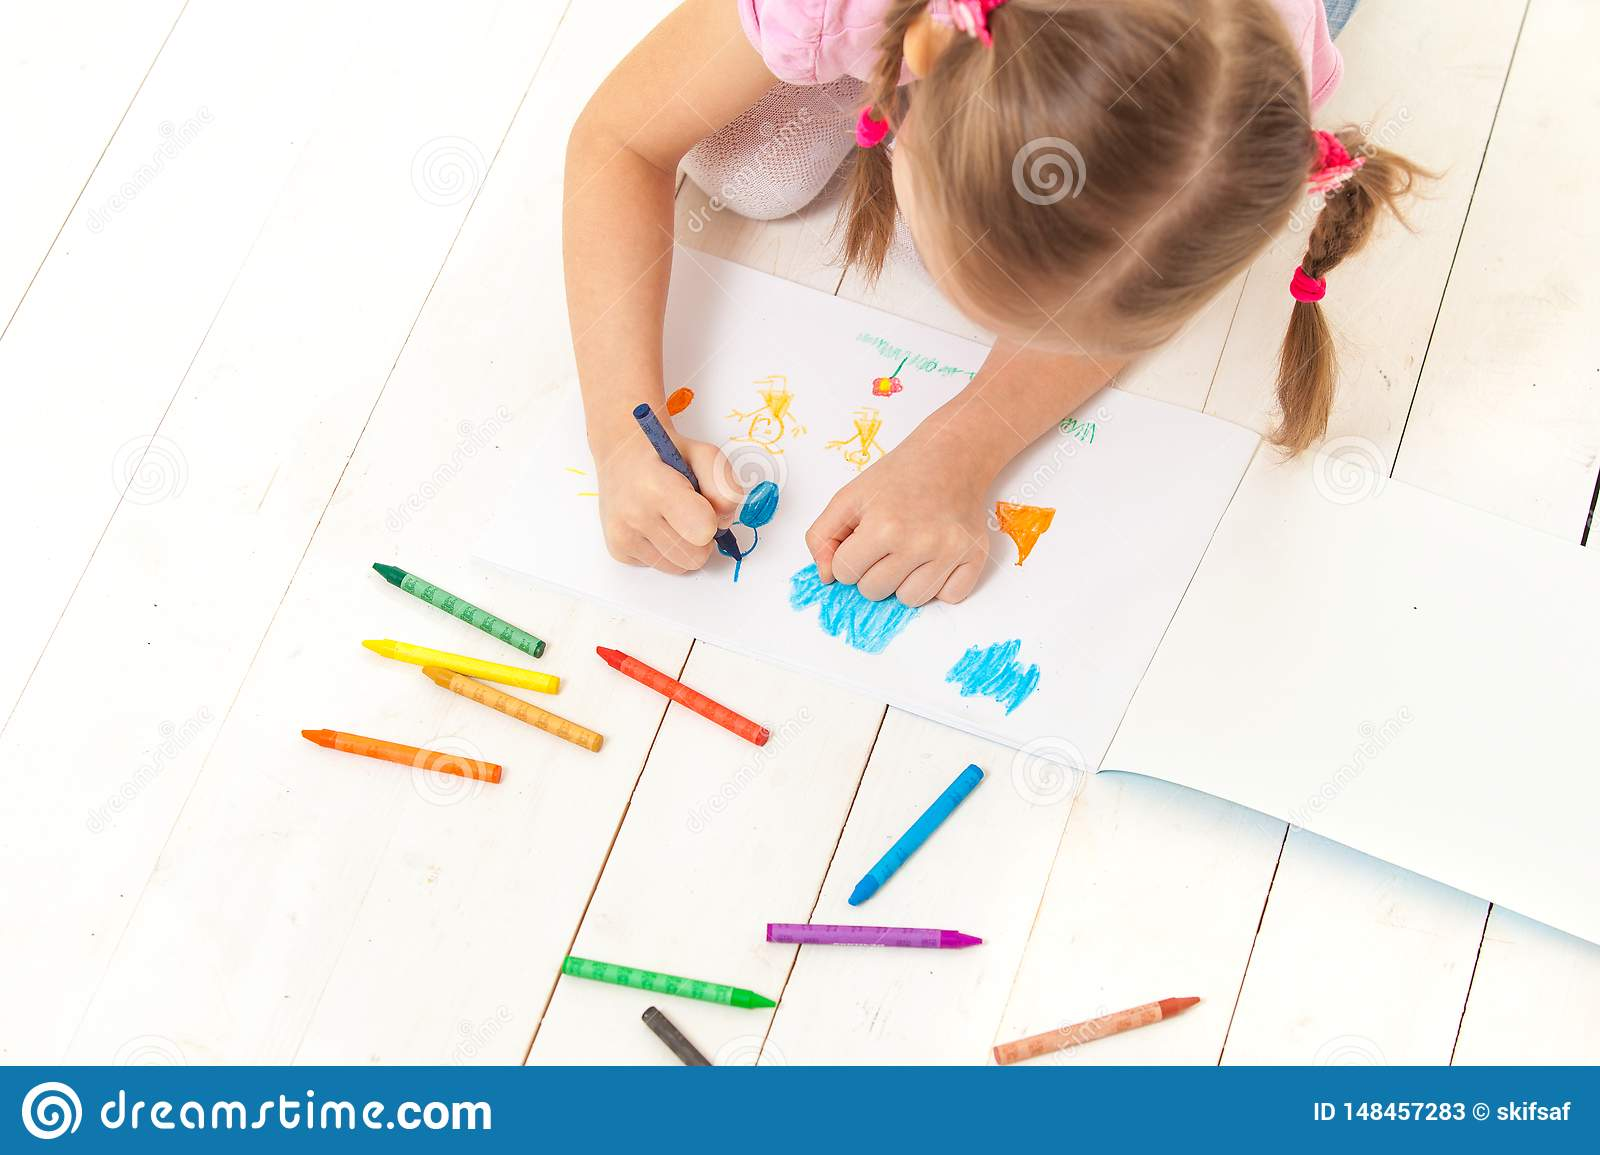 The girl draws with crayons in the album